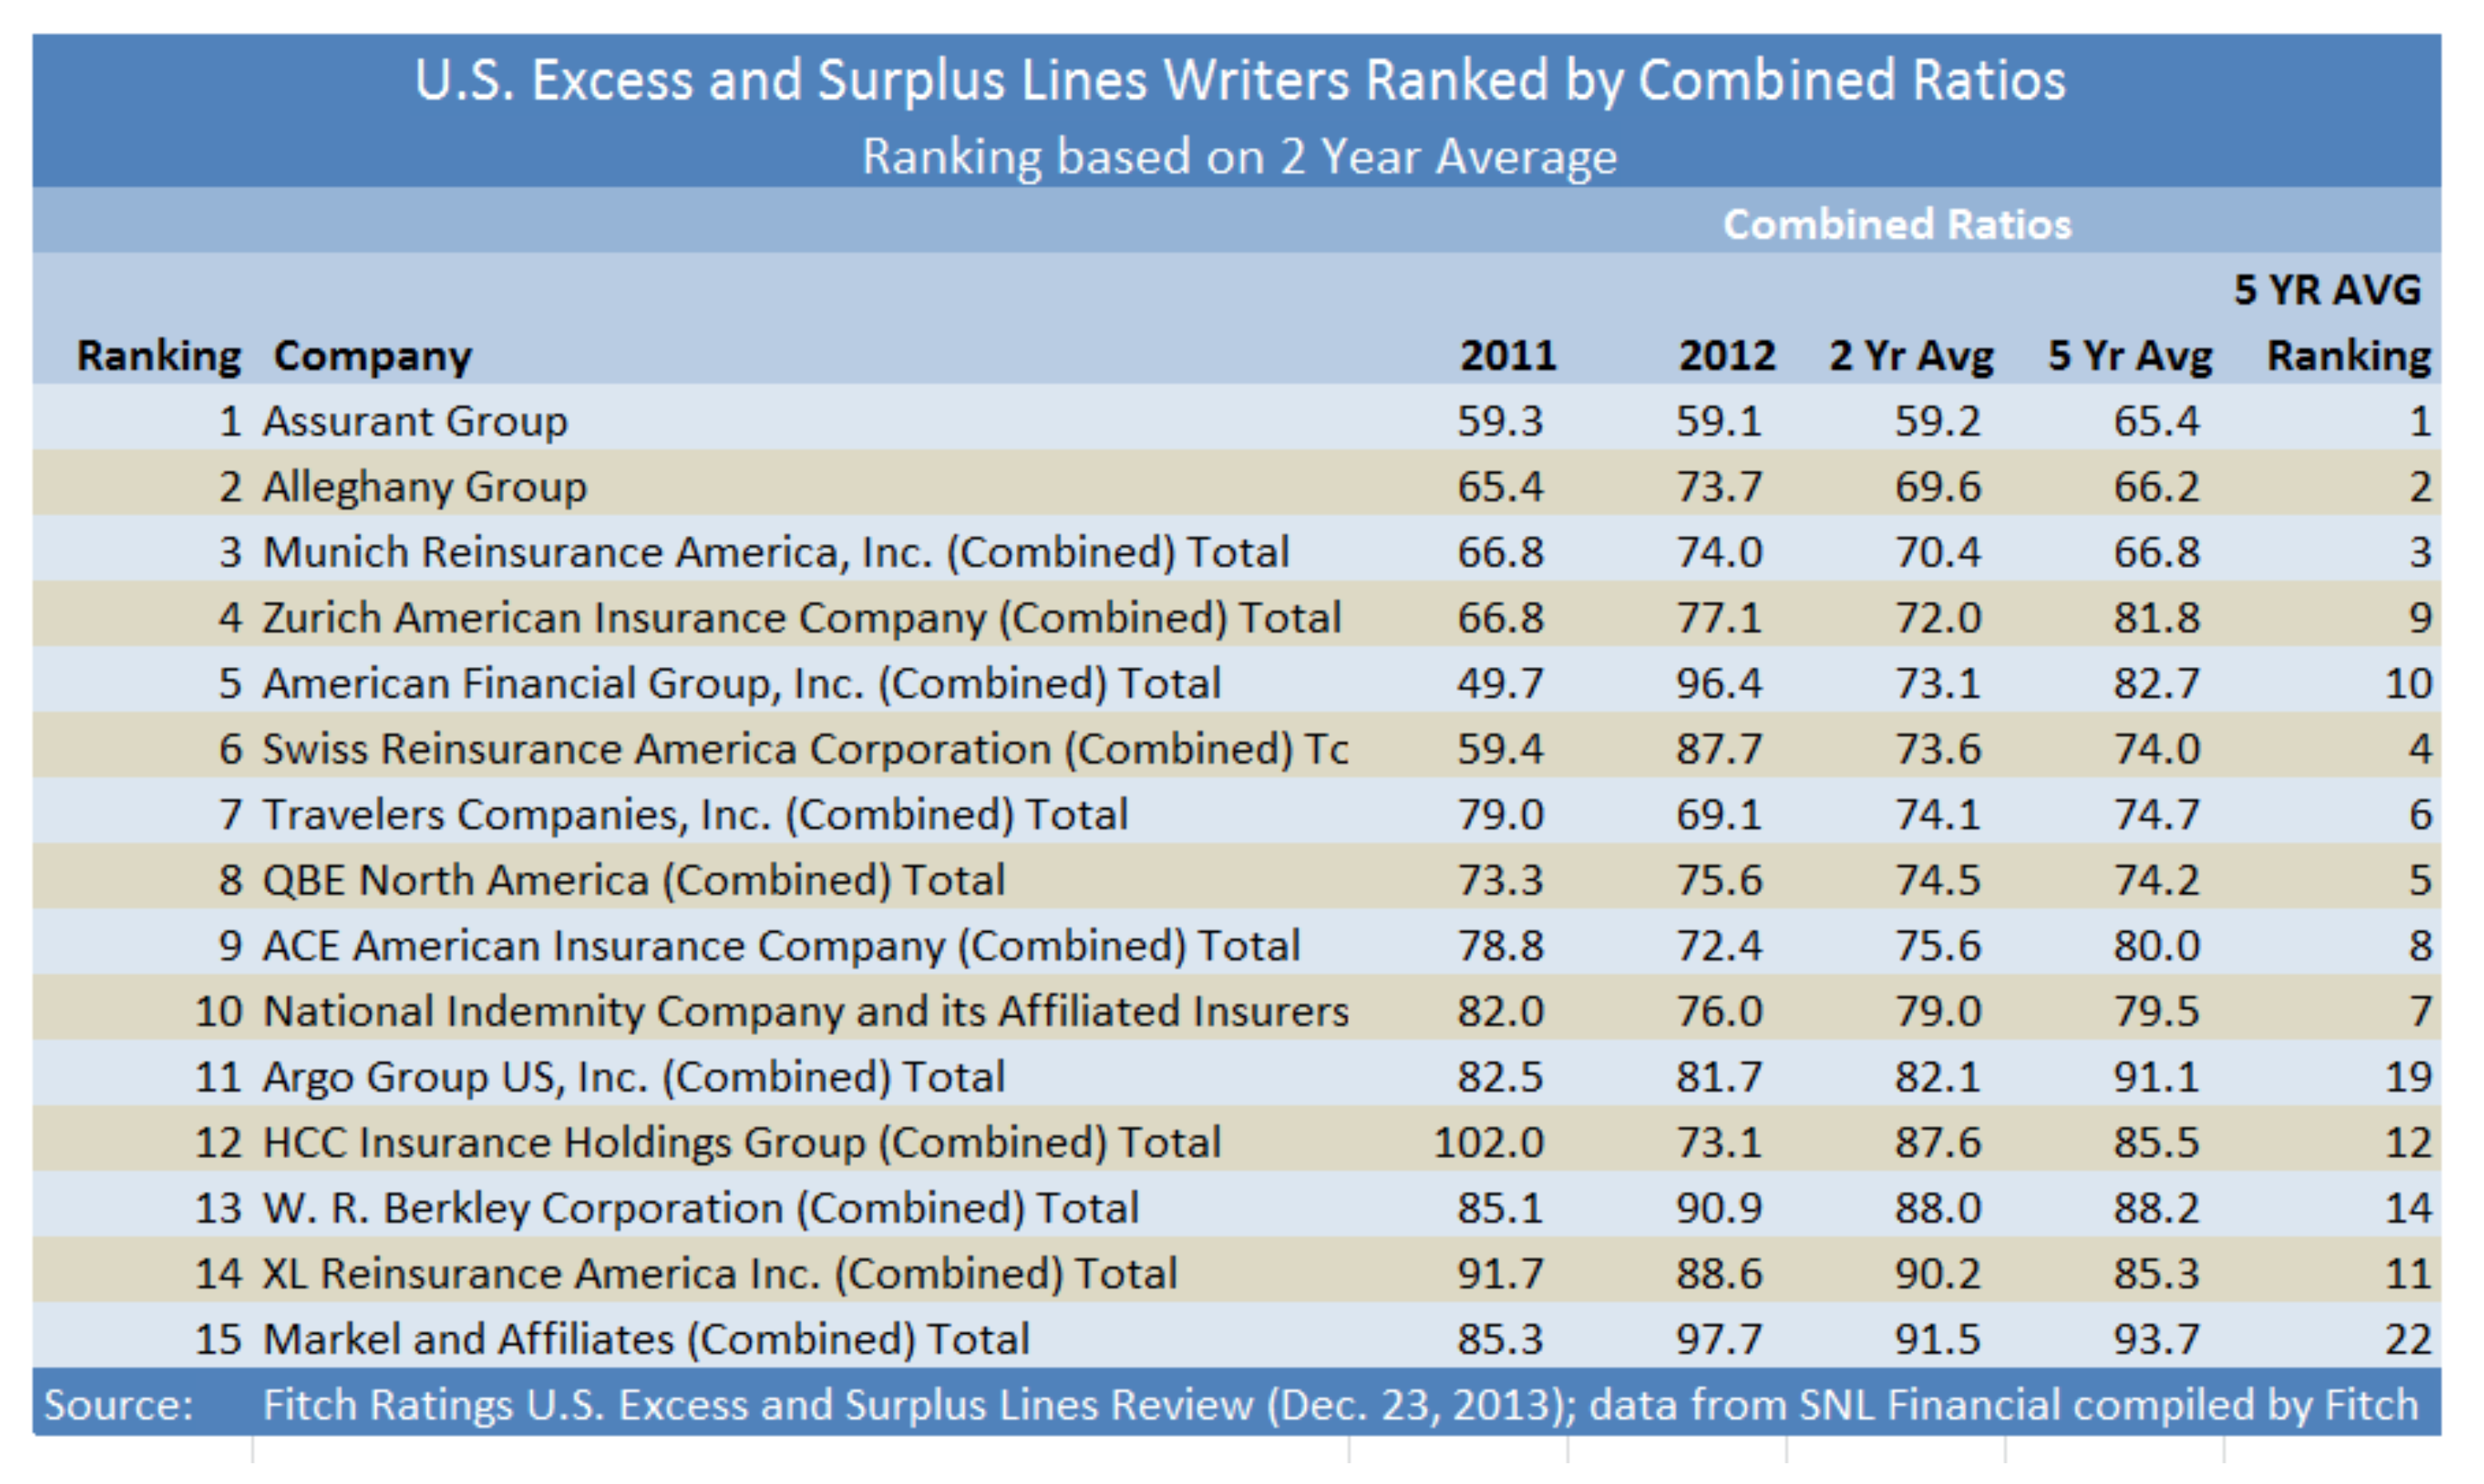 Fastest Growing E&S Carriers in Top 30 Revealed: Fitch Report